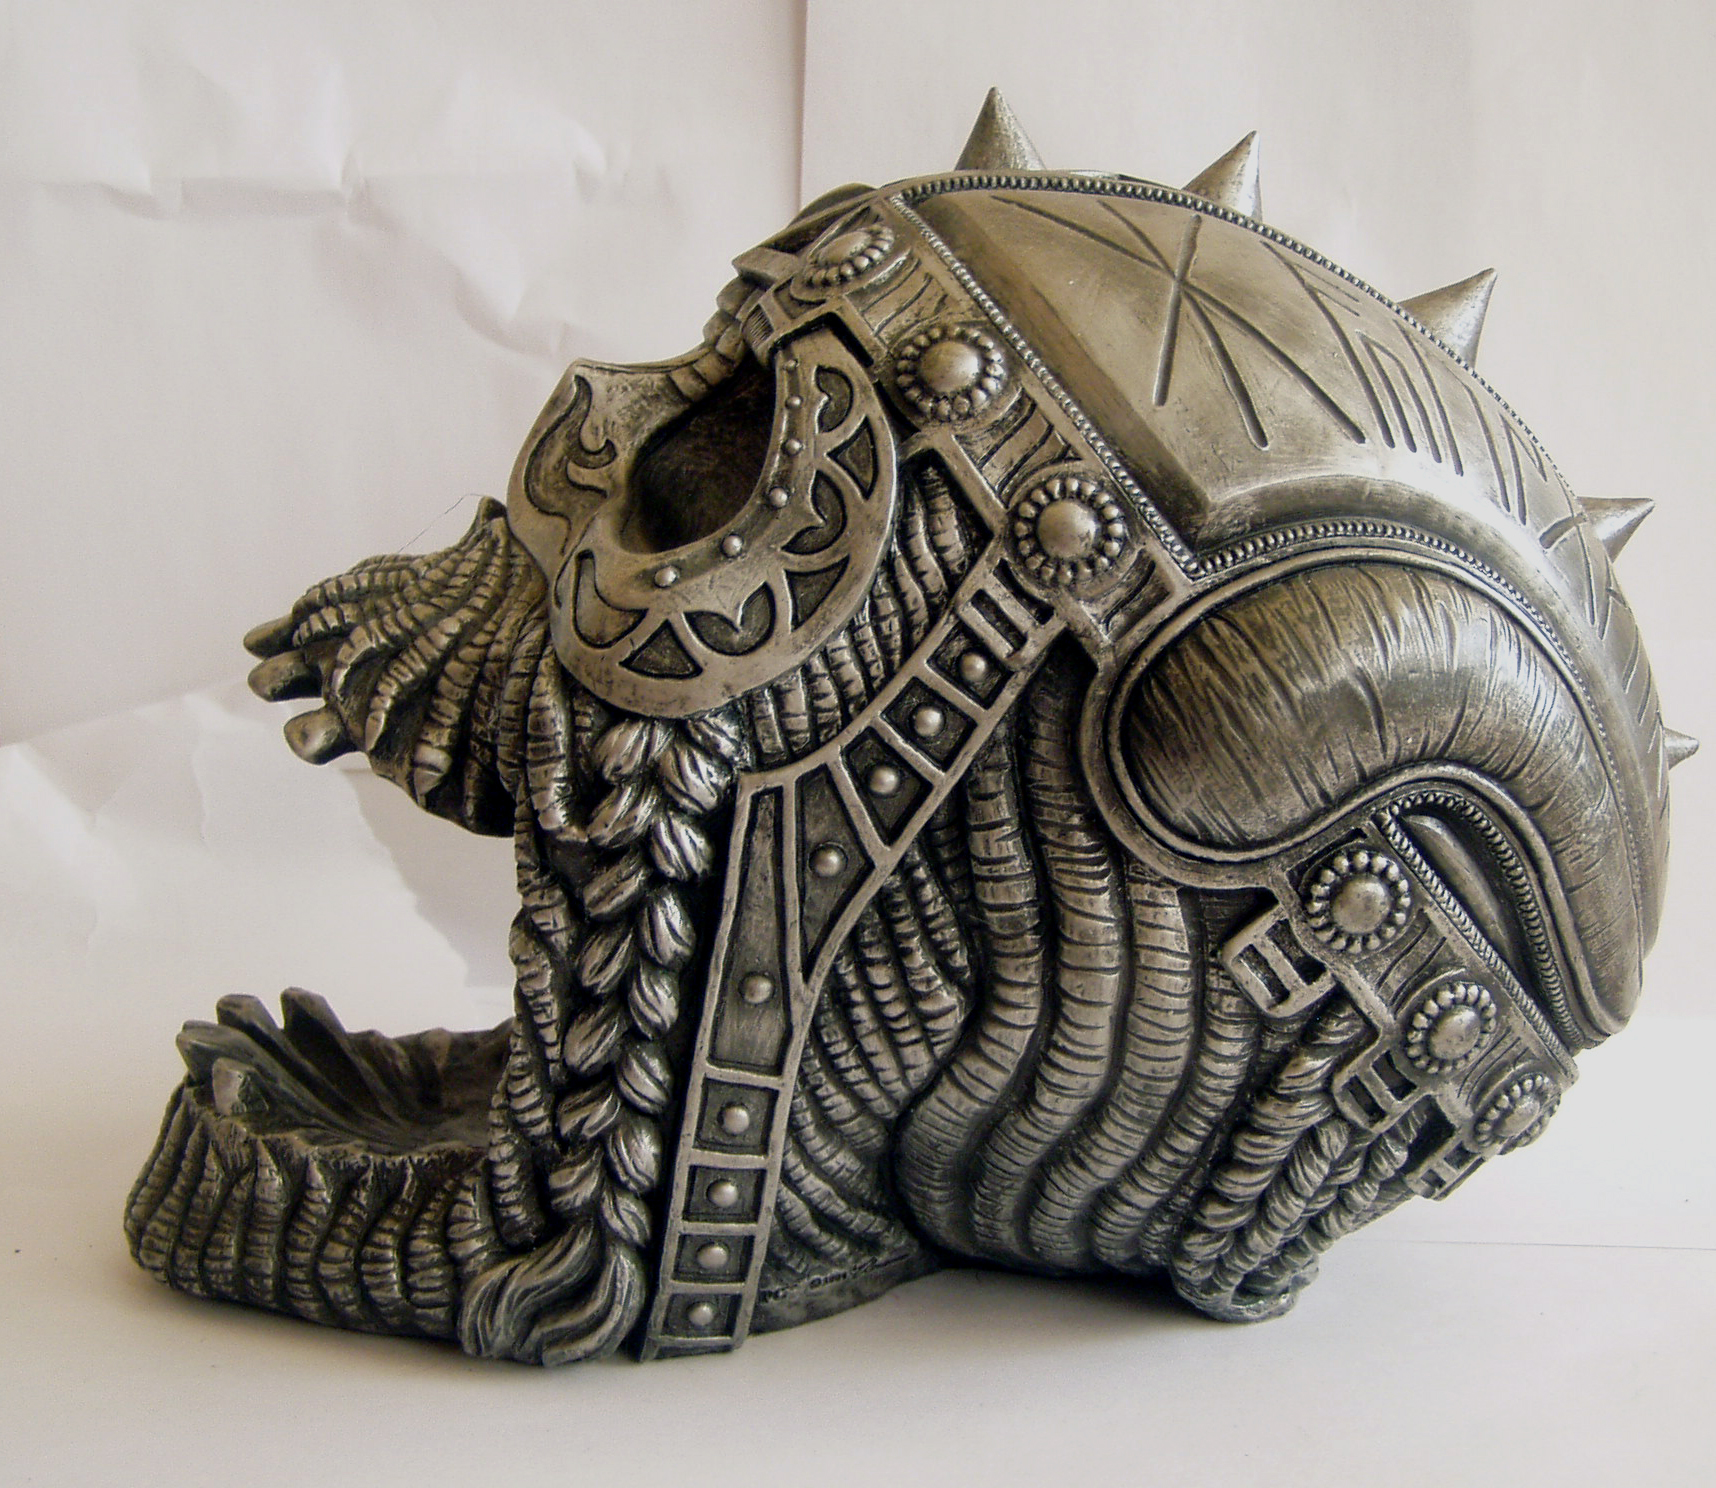 Looking For Metal Skull (Life Sized)